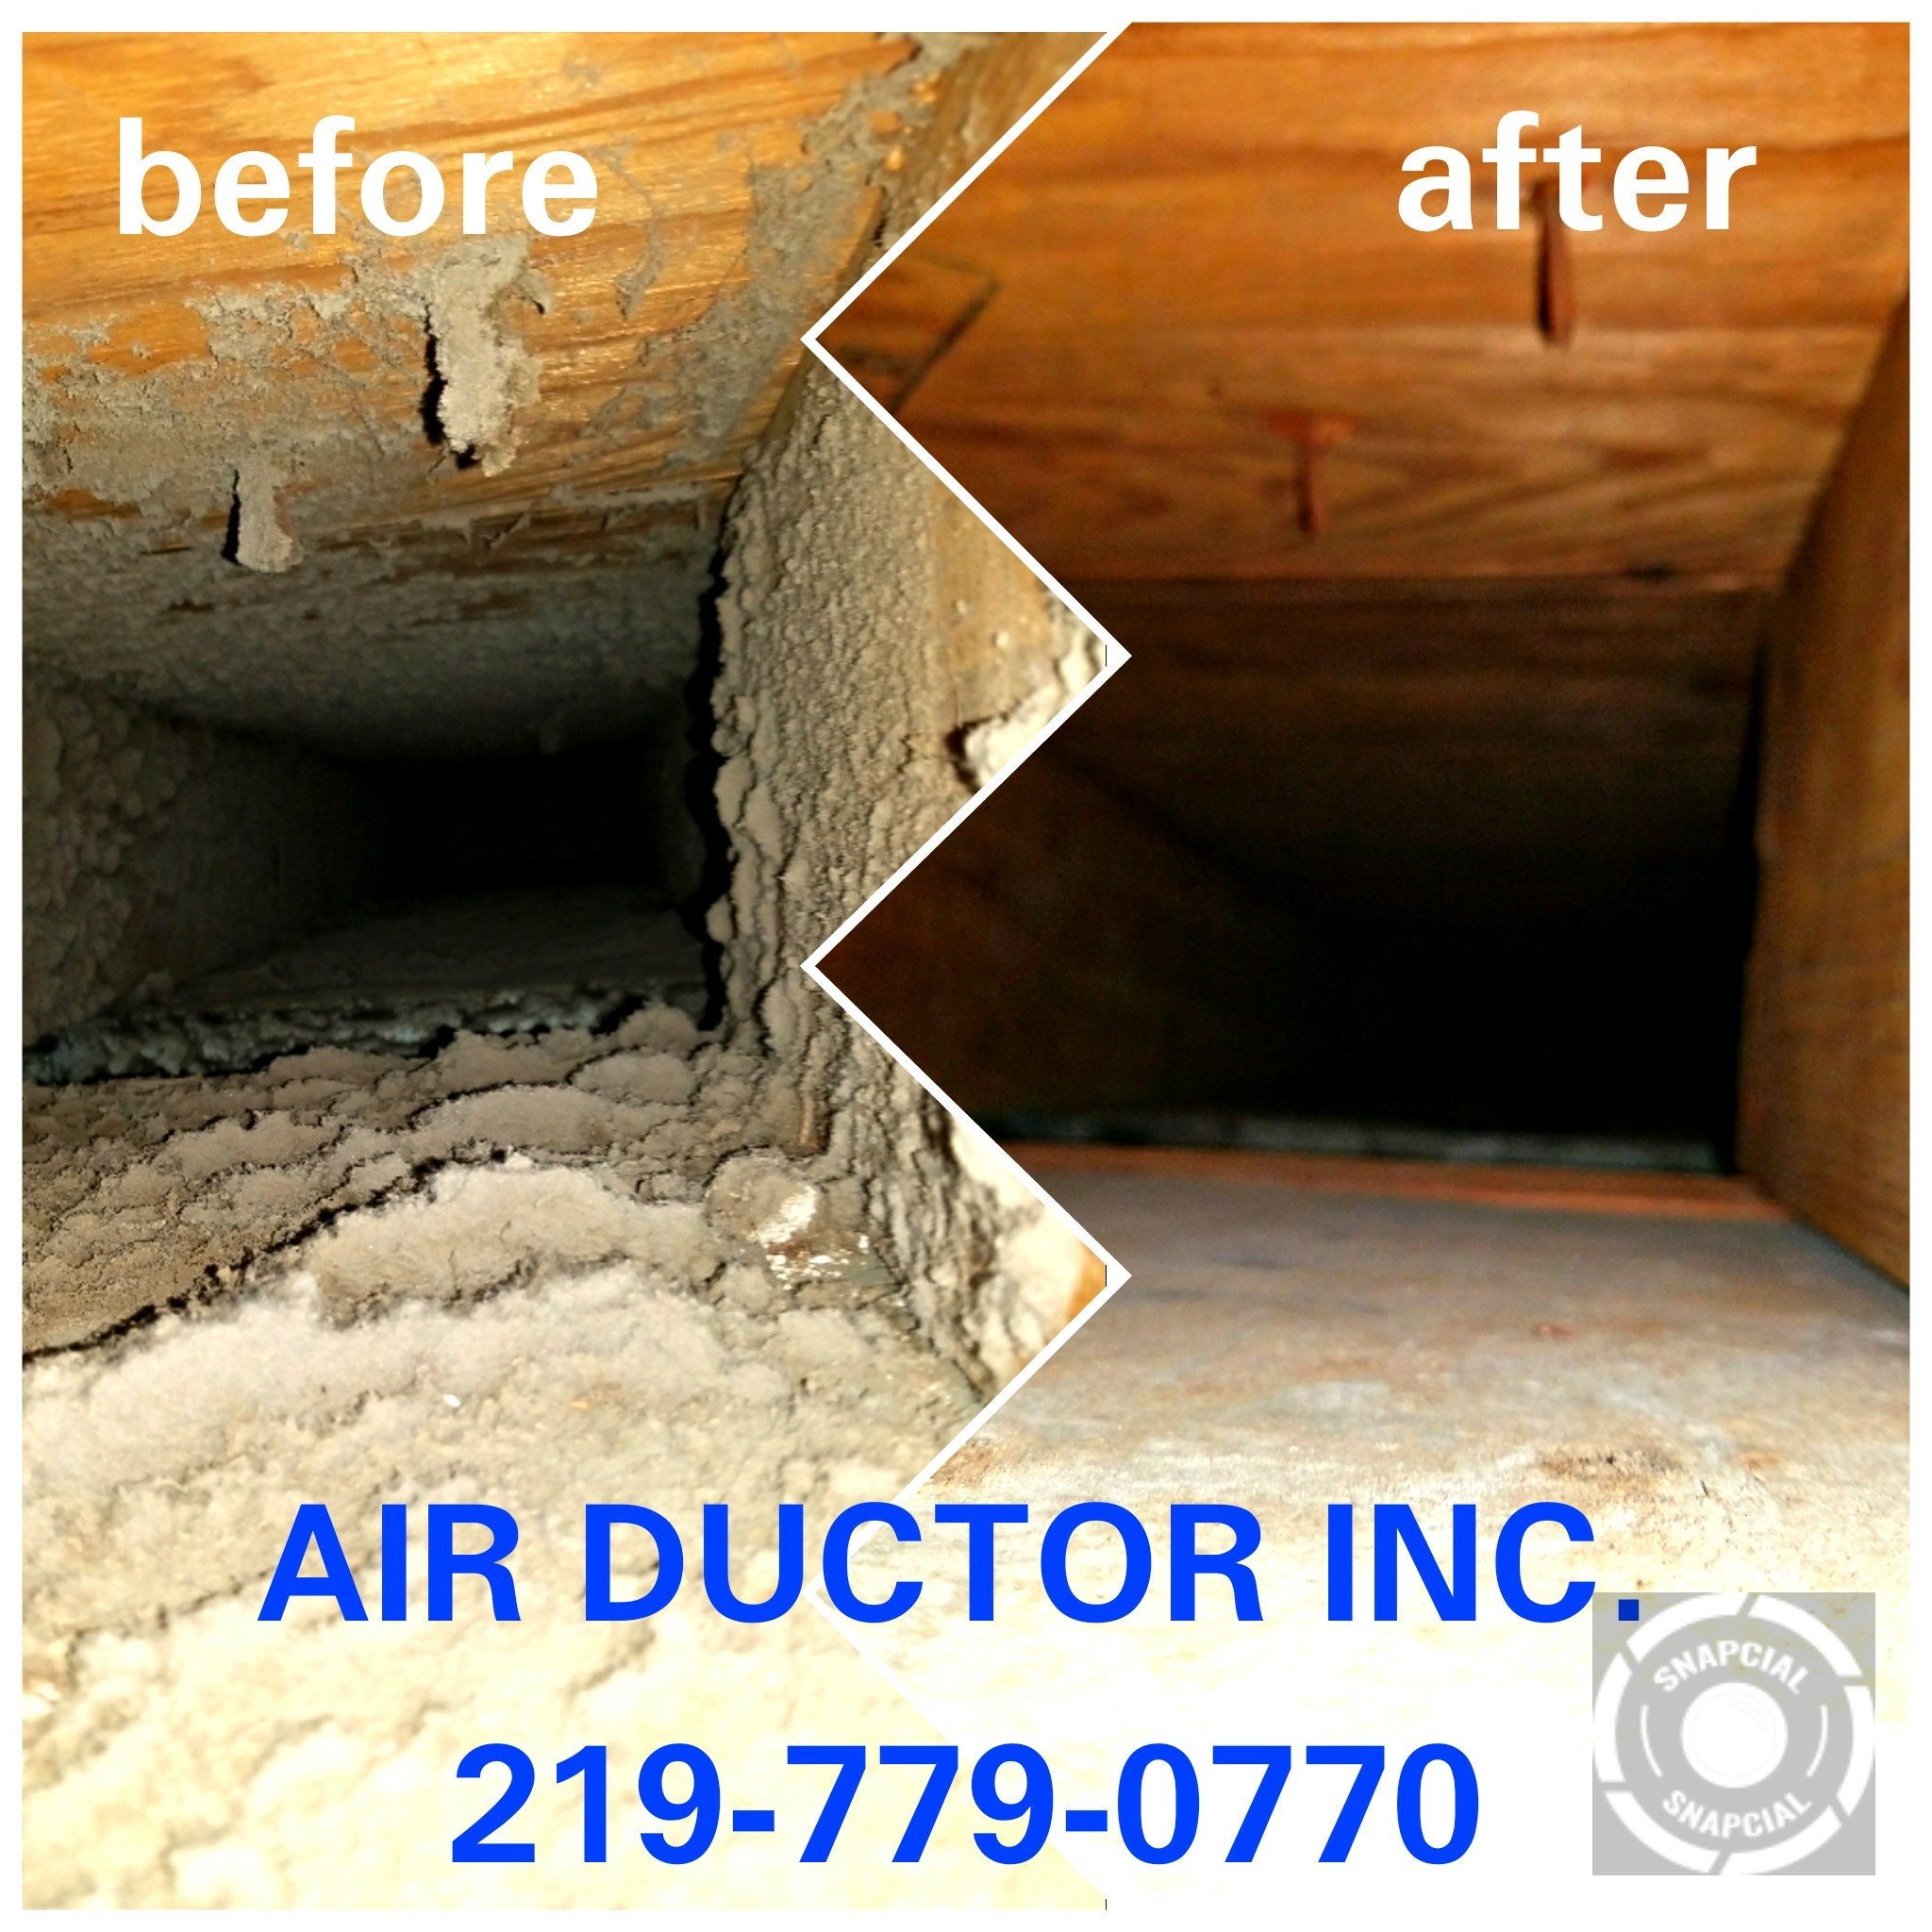 Before and after pictures of an air duct cleaning service performed.